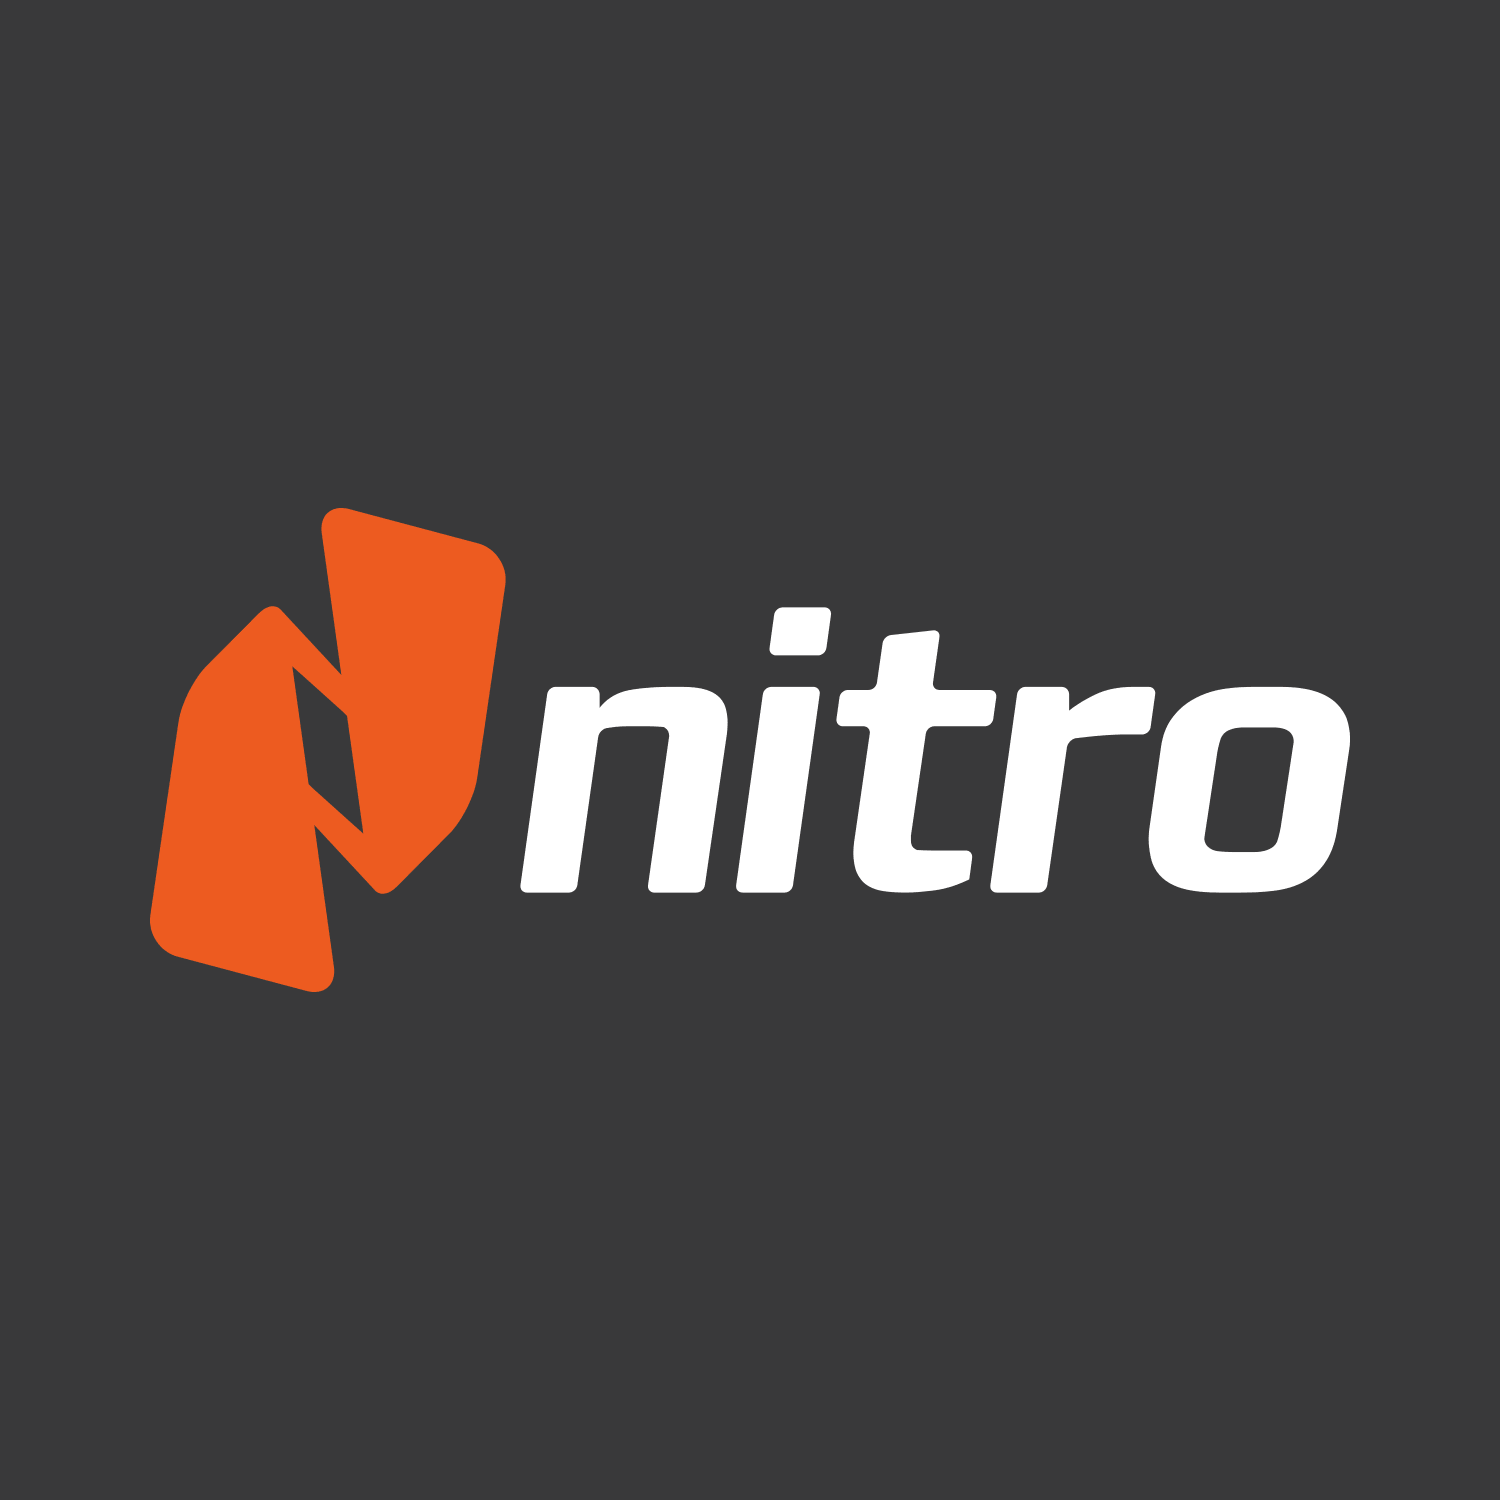 Nitro | Edit, Convert, Create & eSign PDF Files